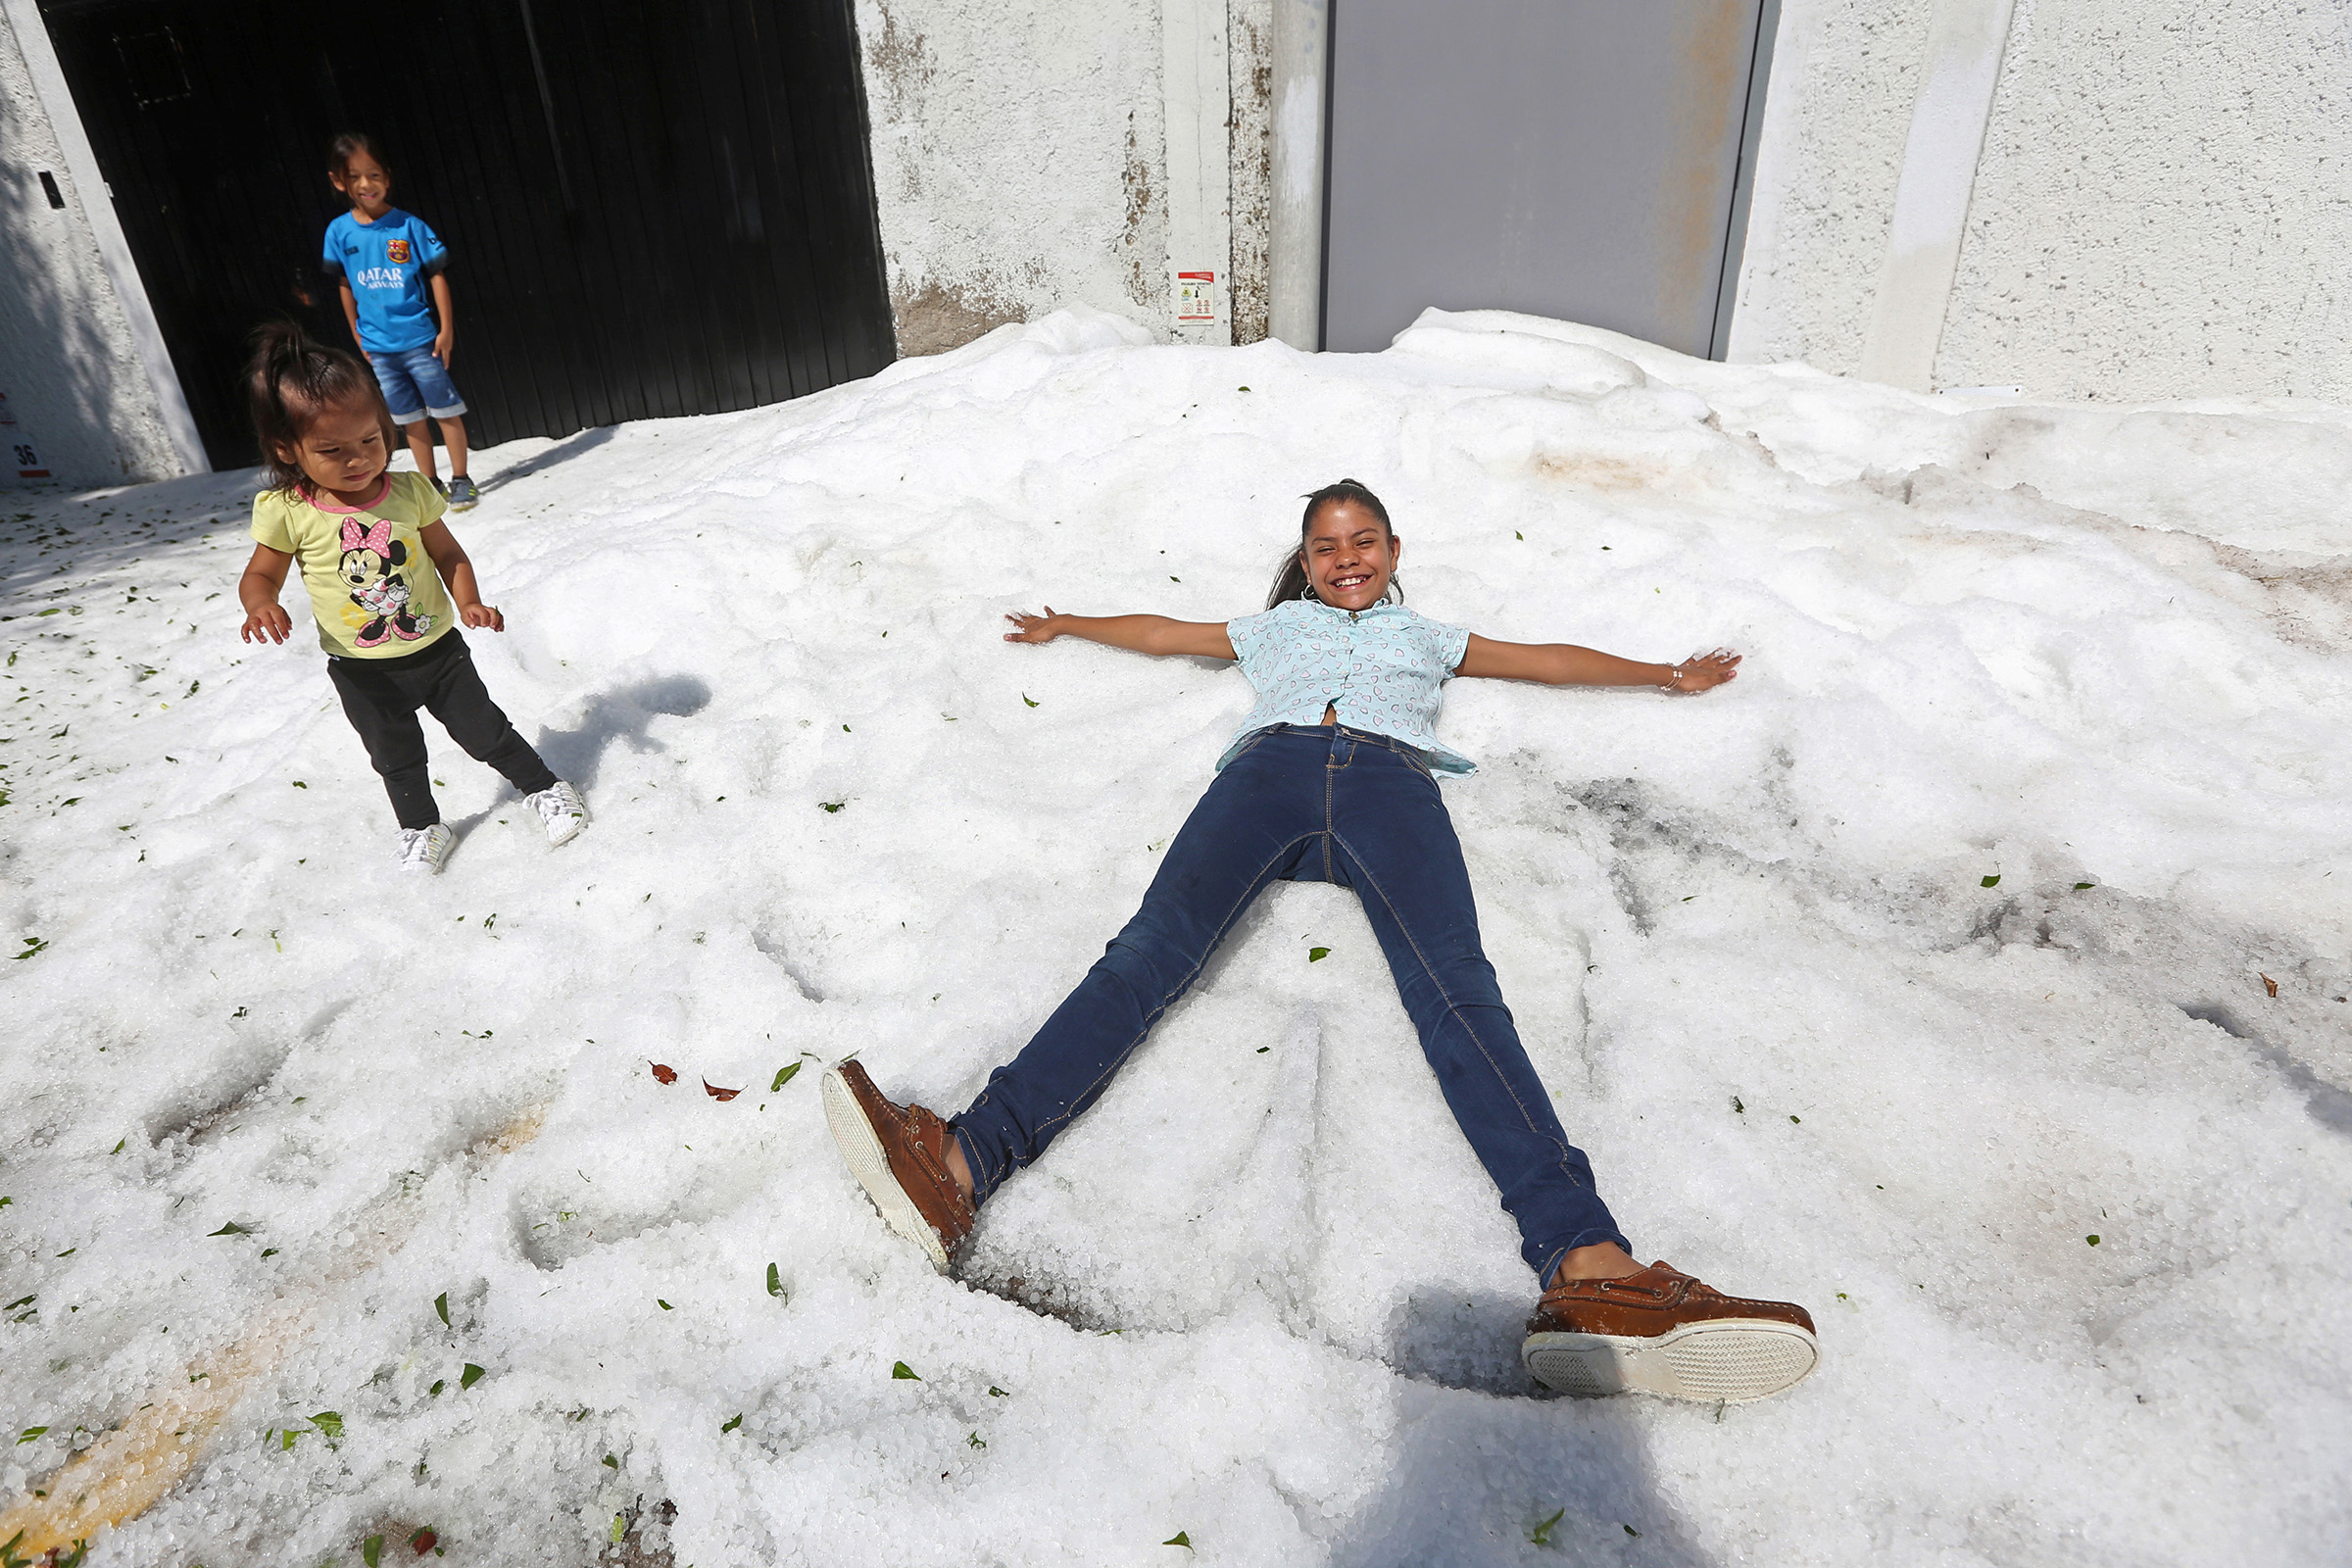 Residents play on top of ice after a heavy storm of rain and hail which affected some areas of the city in Guadalajara, Mexico on June 30, 2019.